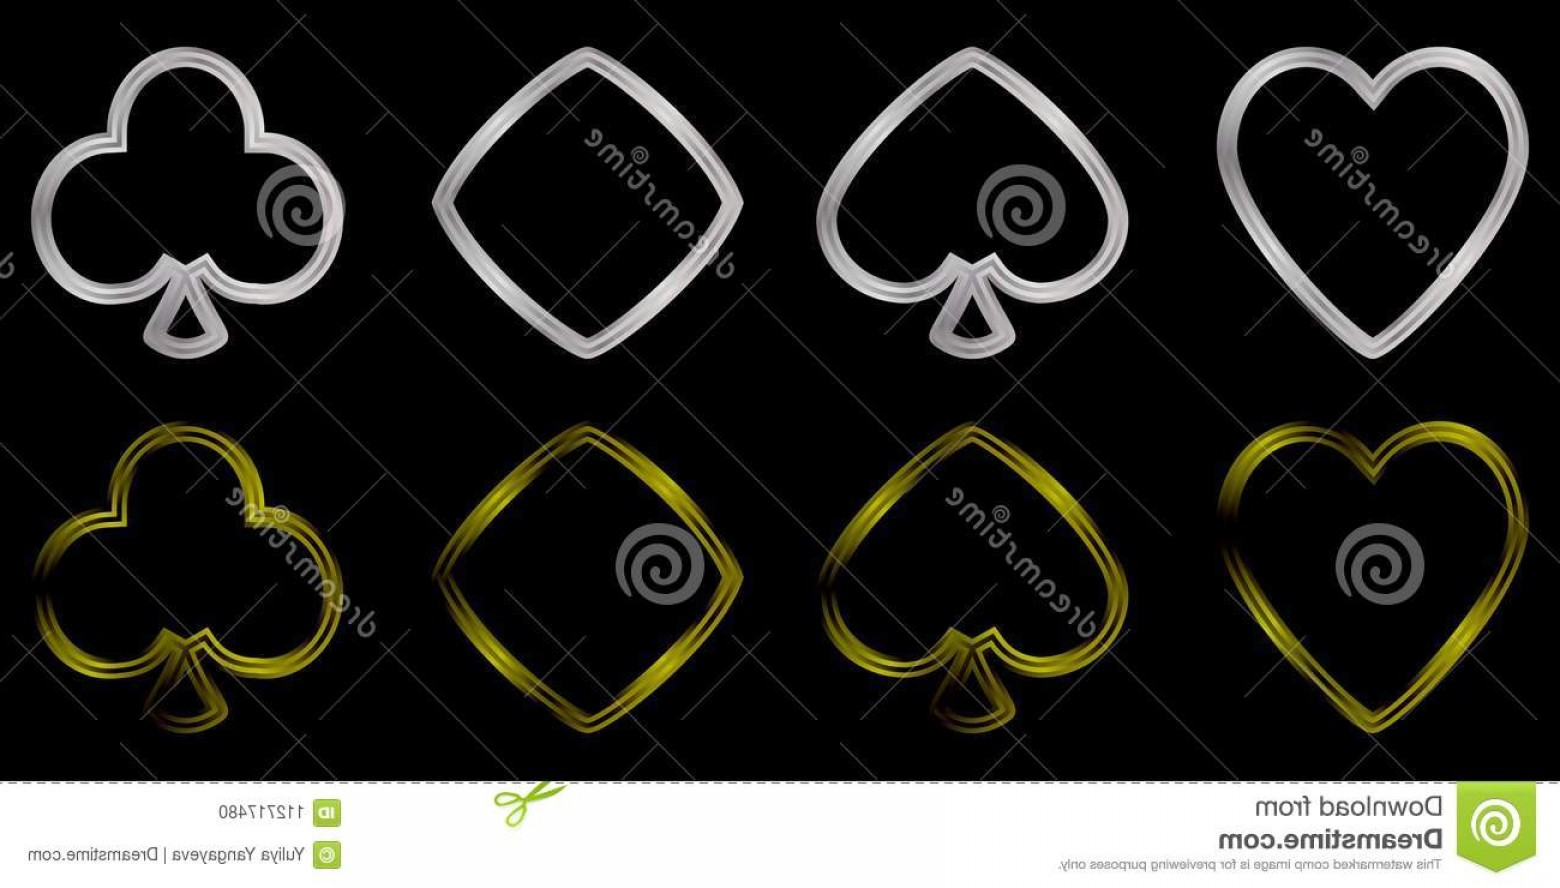 Card Suits Vector Outlines: Card Suits Silver Gold Black Background Voluminous Figures Bubi Cross Peaks Worms Metal Outline Image